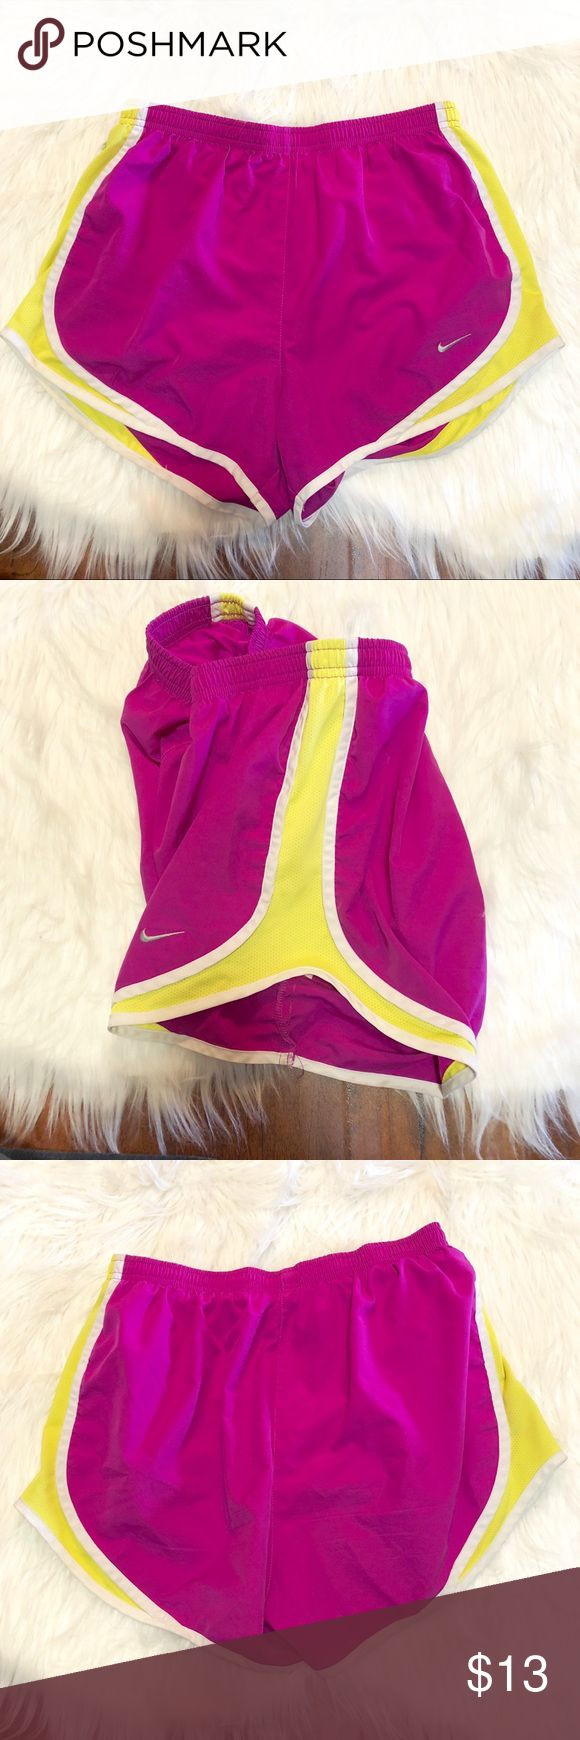 Nike Dri-fit Tempo Running Shorts Pink Yellow S Nike Dri-Fit Tempo Running Shorts  Size Small  Good pre-owned condition; interior size label is somewhat rubbed off from washing. From a smoke-free home.  Color is somewhere between a bright pink and fuchsia- very bright and cheery :-)  -Hidden pocket inside for key, ID, fuel, etc. -Dri-FIT® fabric wicks away moisture and keeps you dry and comfortable -Built-in briefs for ultimate coverage -Elastic waistband with mesh panels on sides/hips…